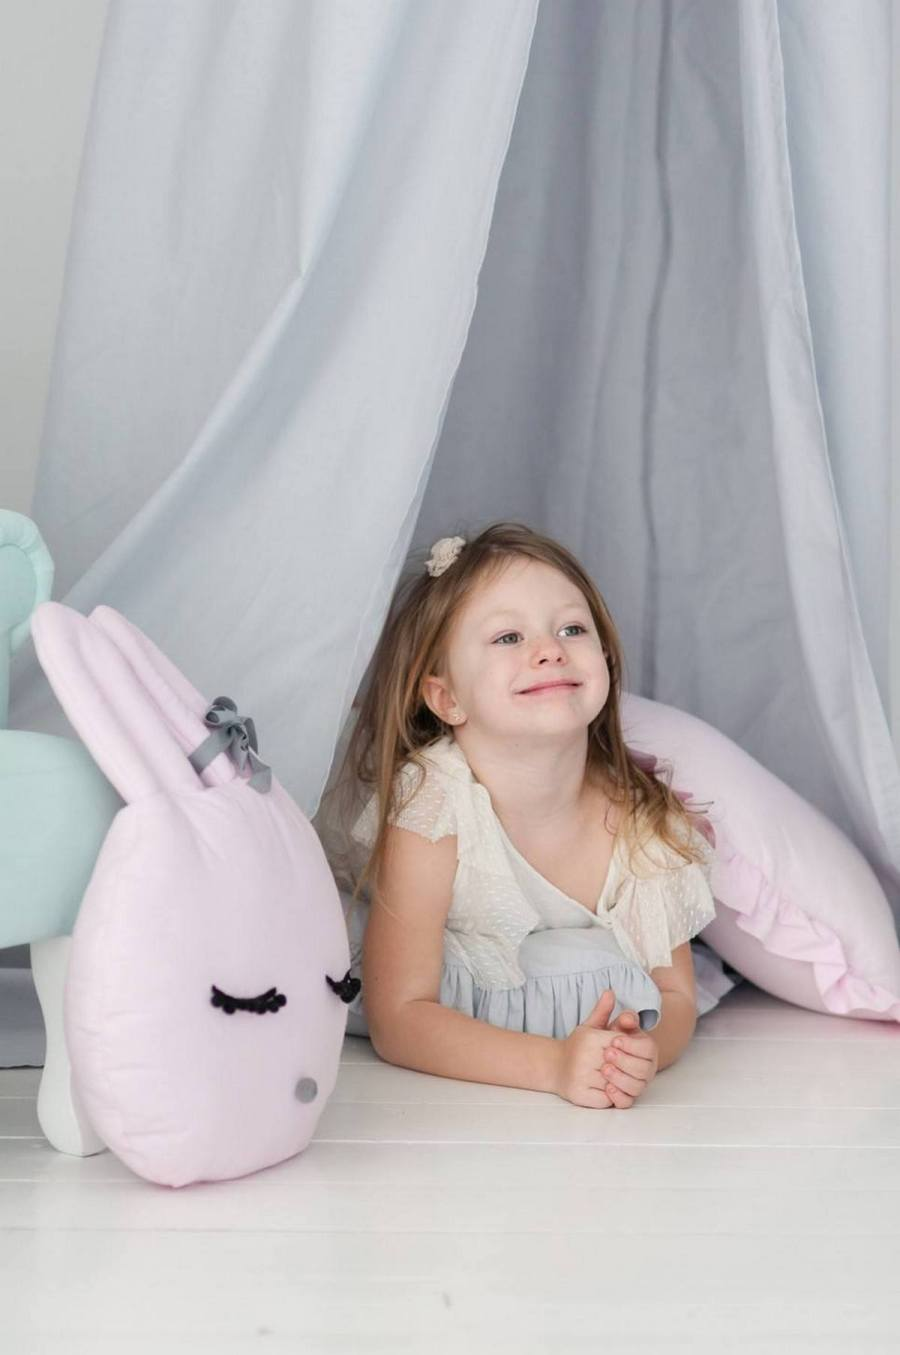 Looking to take your tot's room over the top? The answer is in perfectly picked pillows.